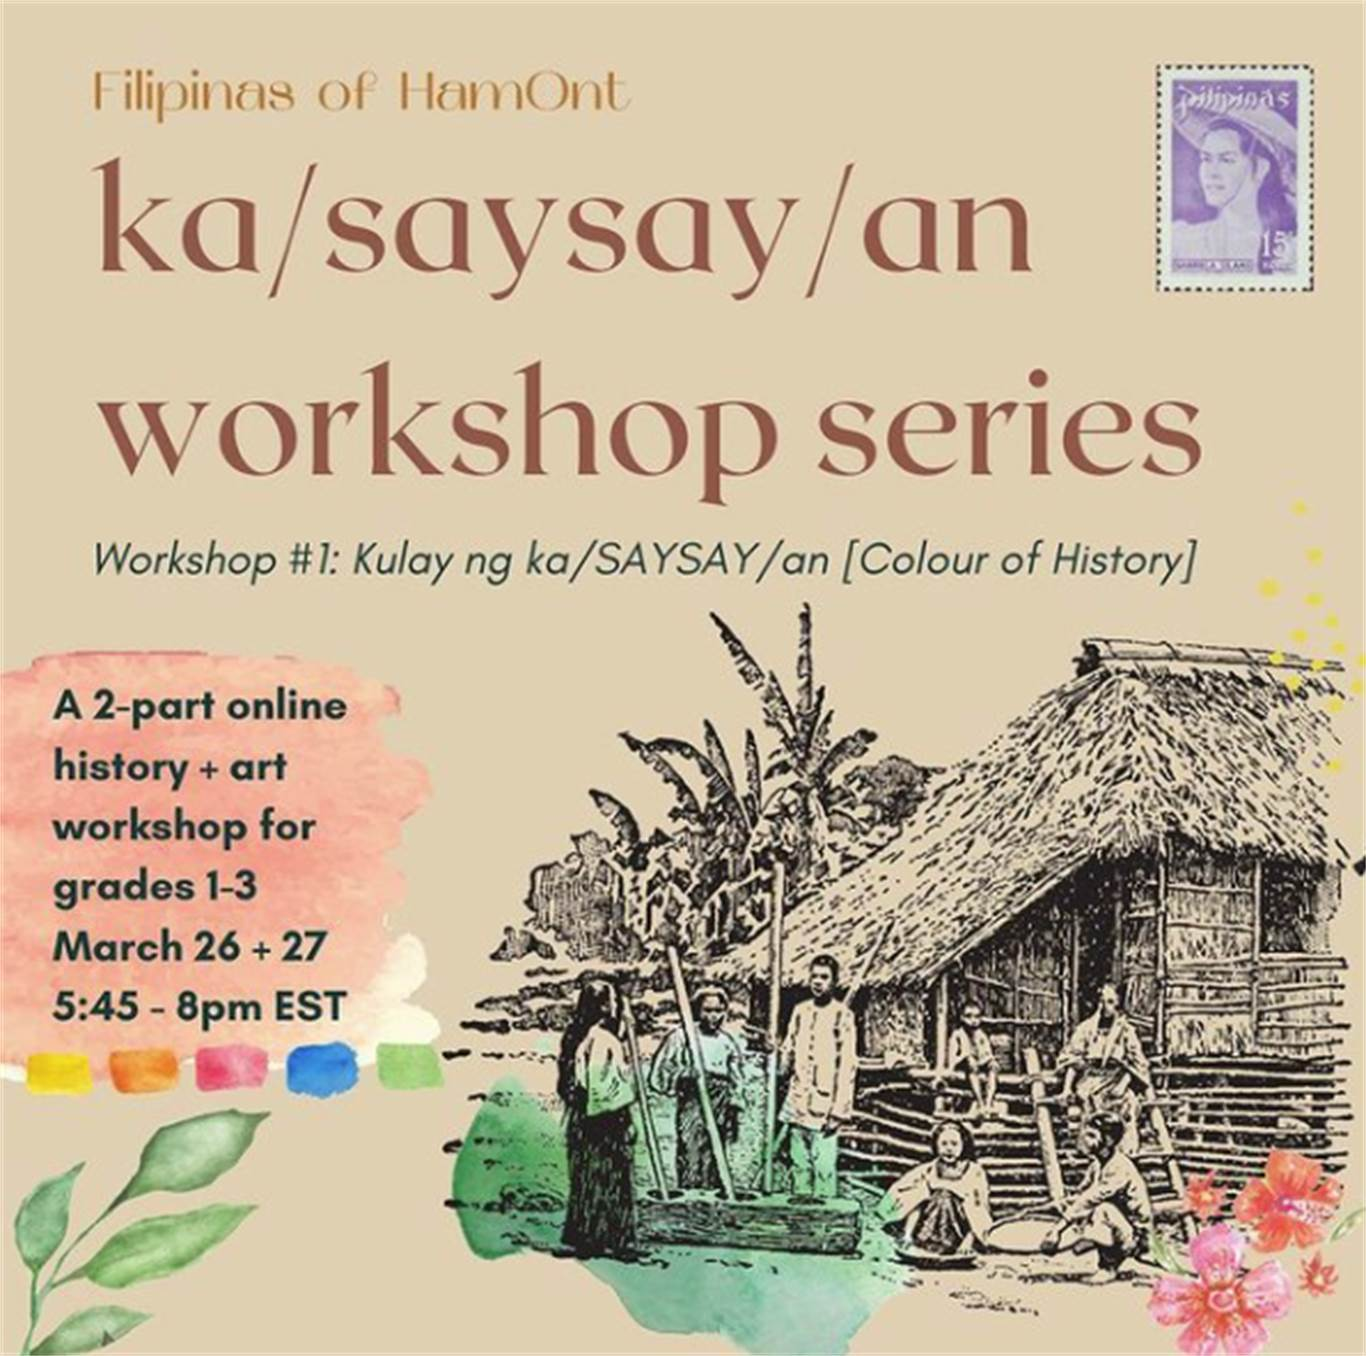 History + Visual Arts Workshop for Filipino children